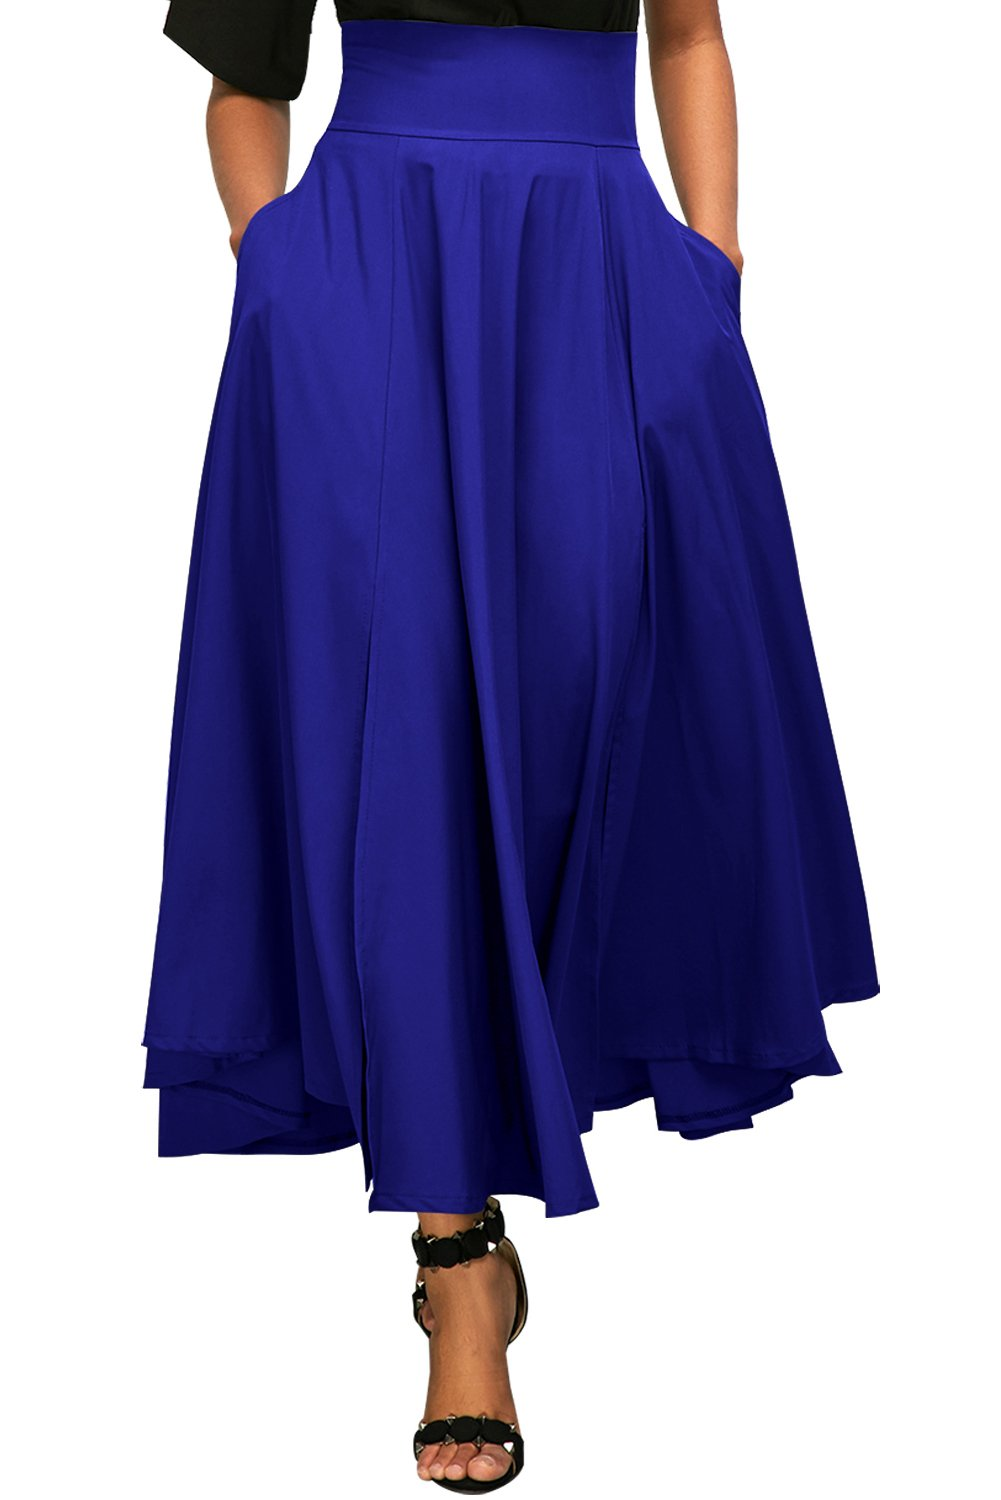 Vanbuy Women's High Waist Long Skirt Front Slit Pleated Midi Skirt with Pockets Z73-65053-Blue-XL